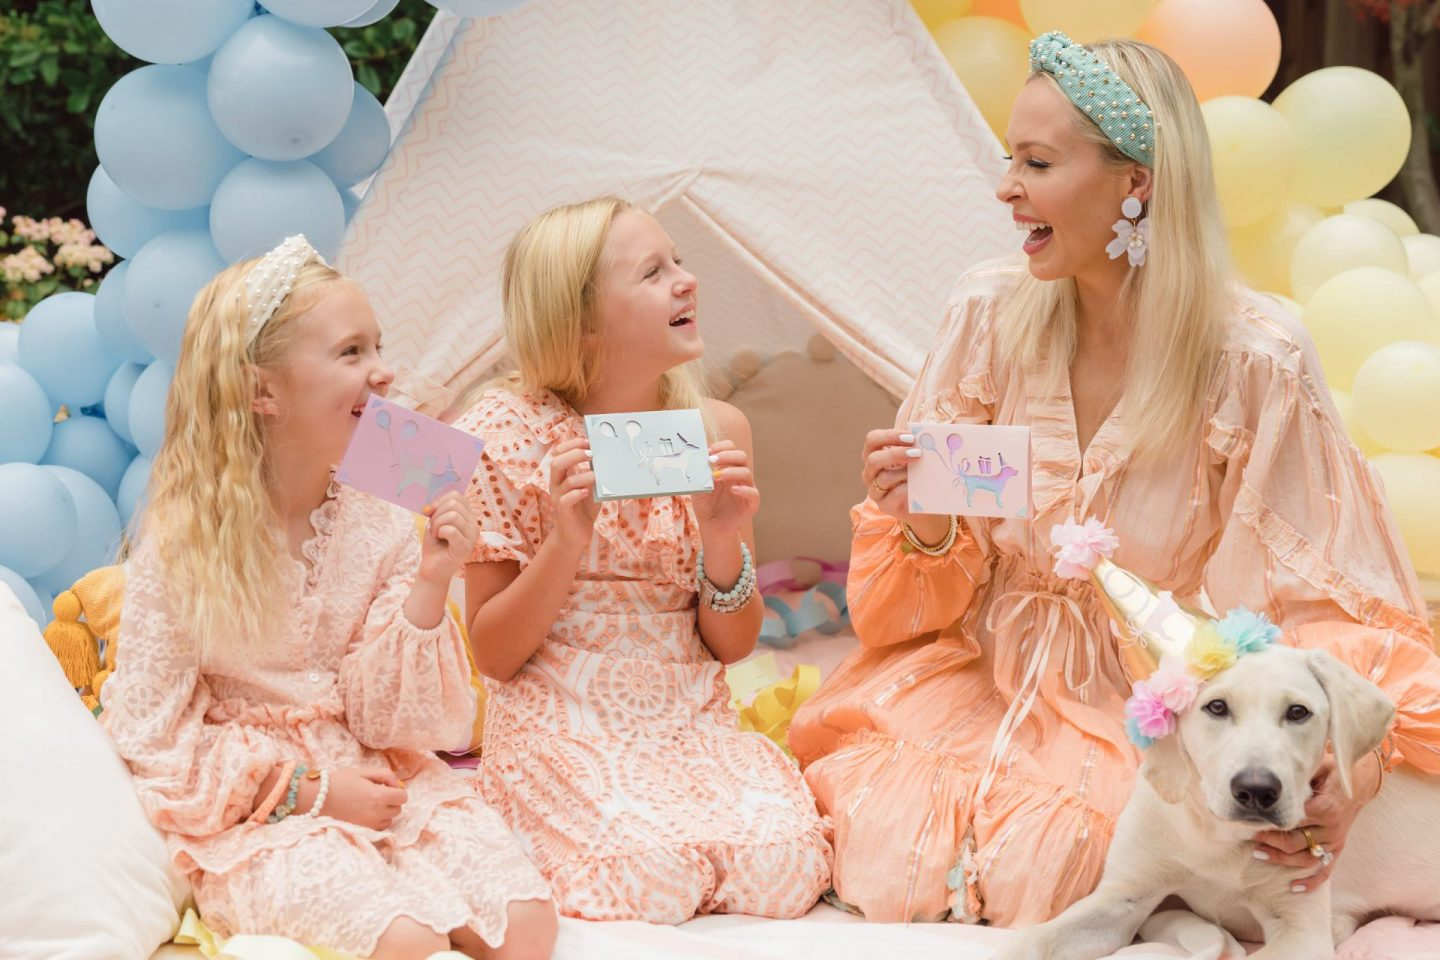 Cricut Joy DIY project ideas for summer party and family time. Pastel balloon garland, girl's birthday party, custom stickers. By Lombard & Fifth, Veronica Levy.